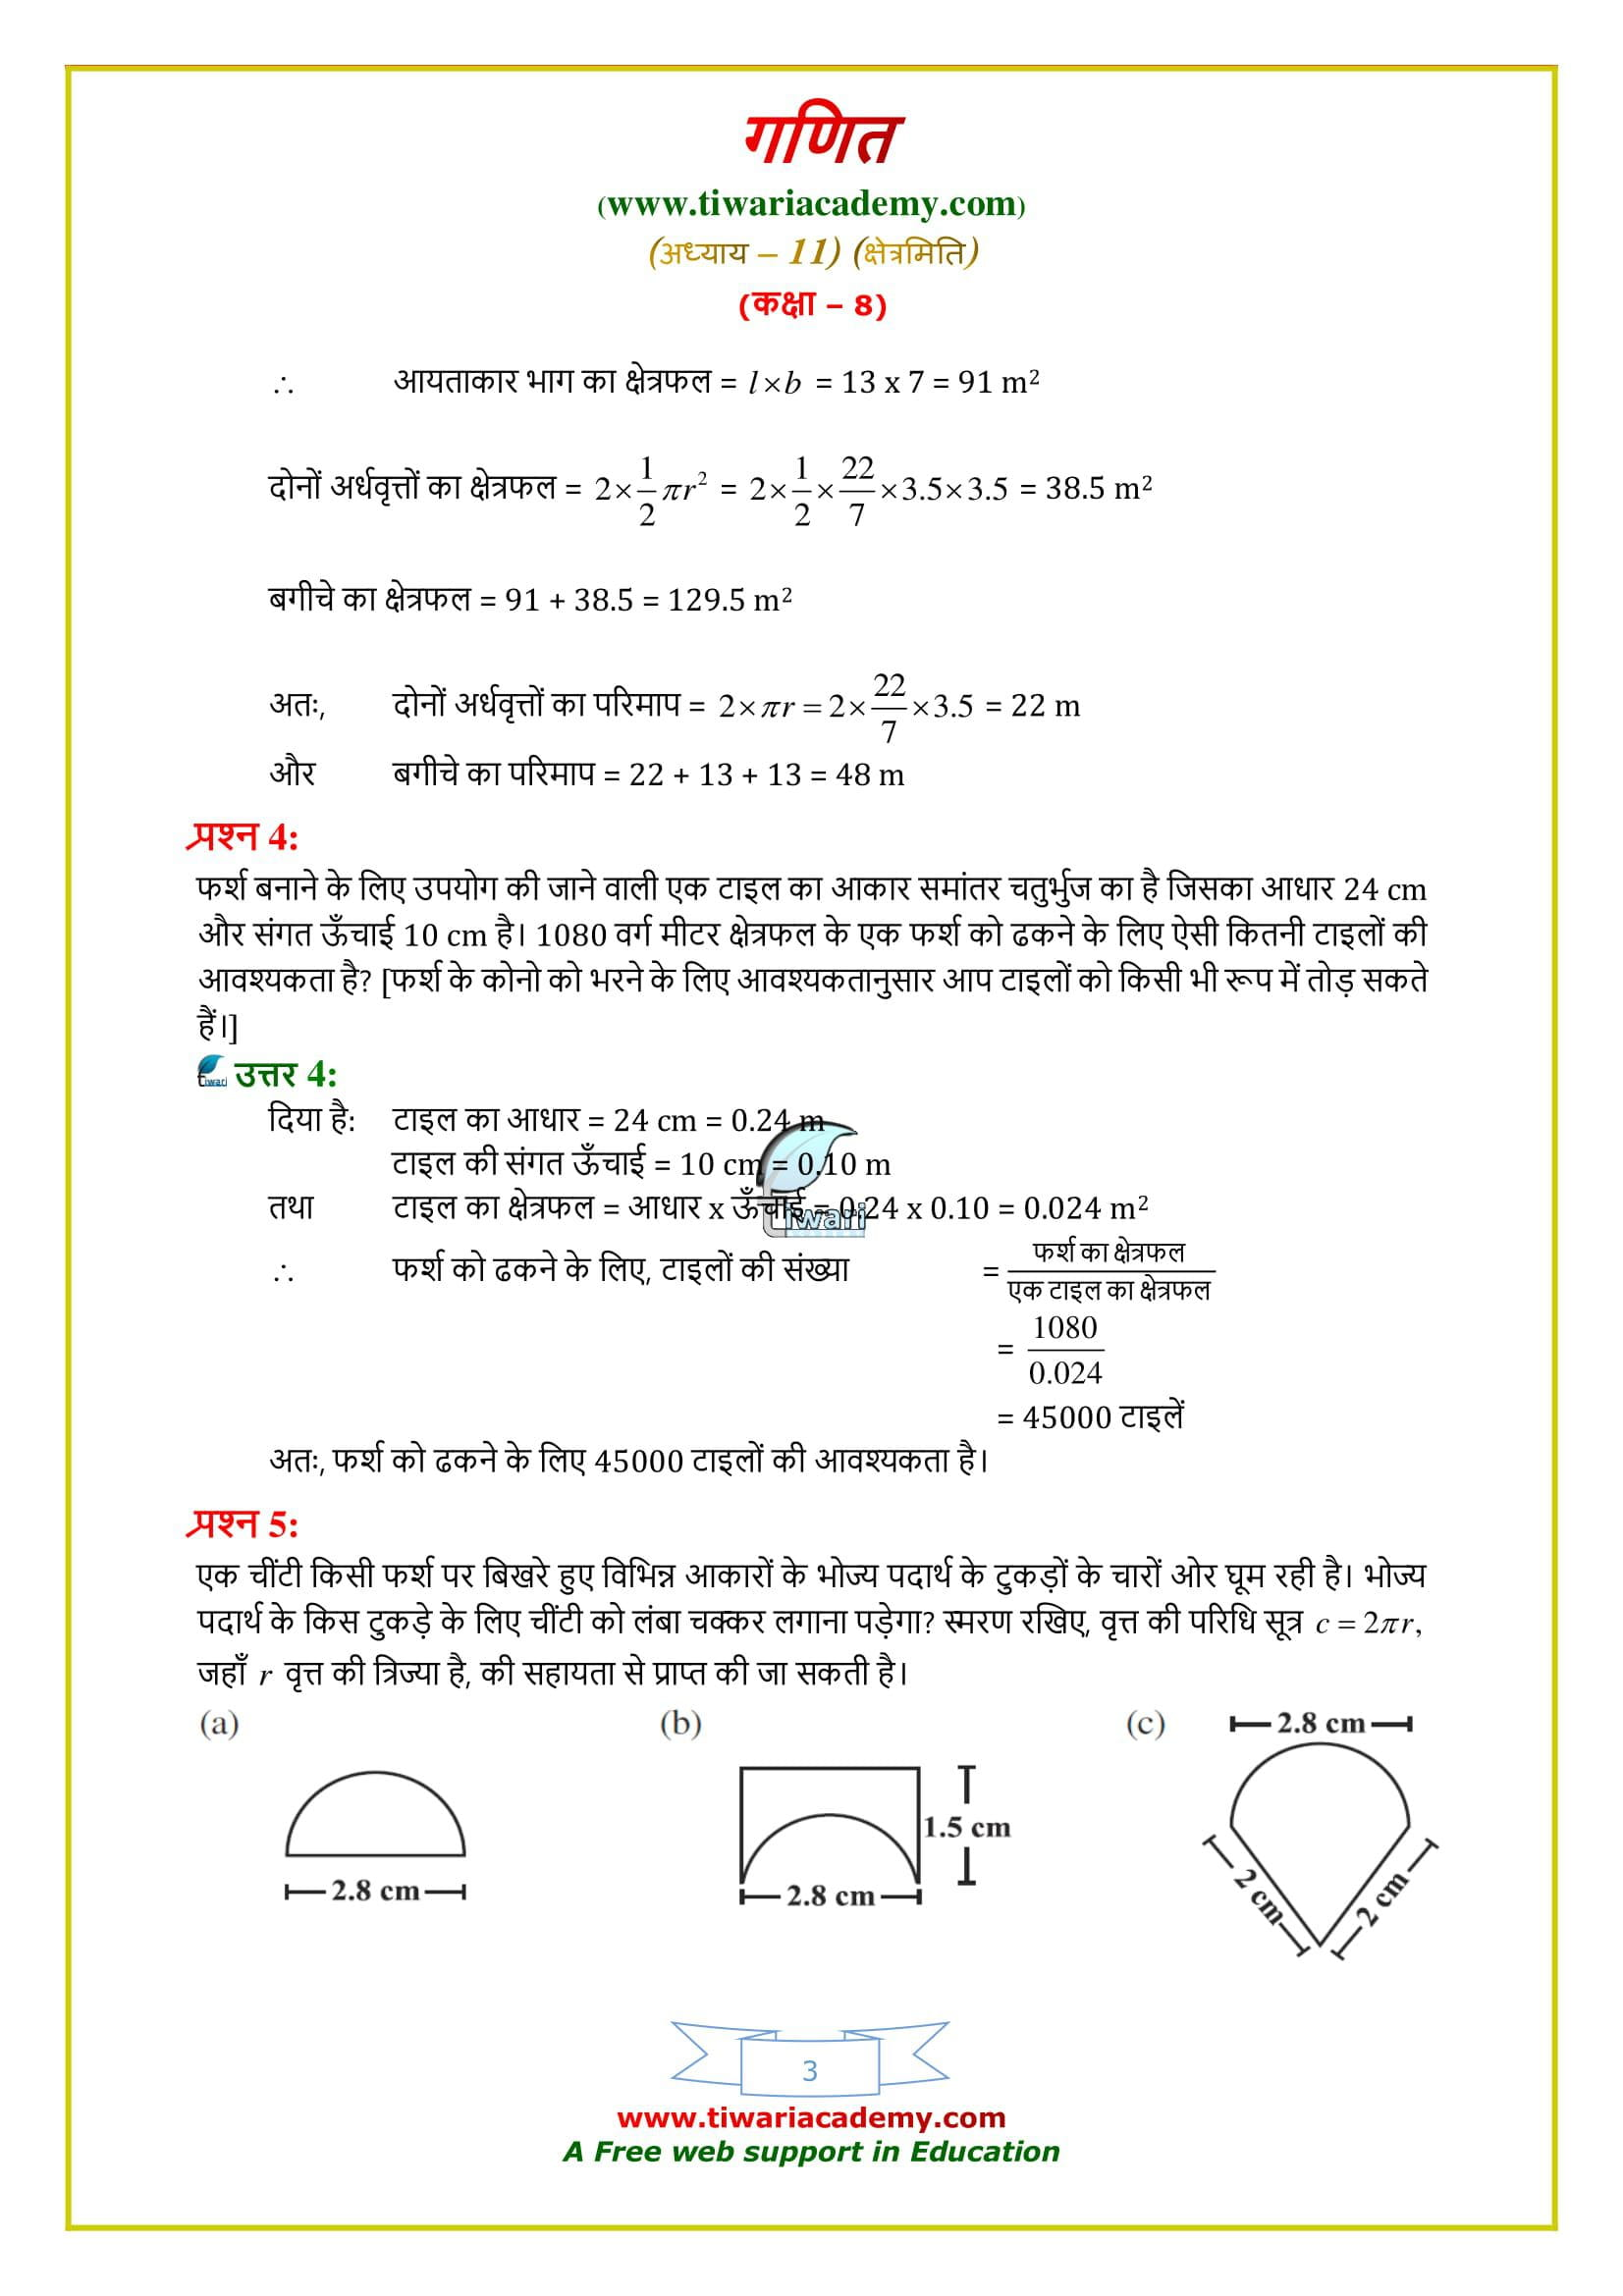 8 Maths Exercise 11.1 solutions free to use and download